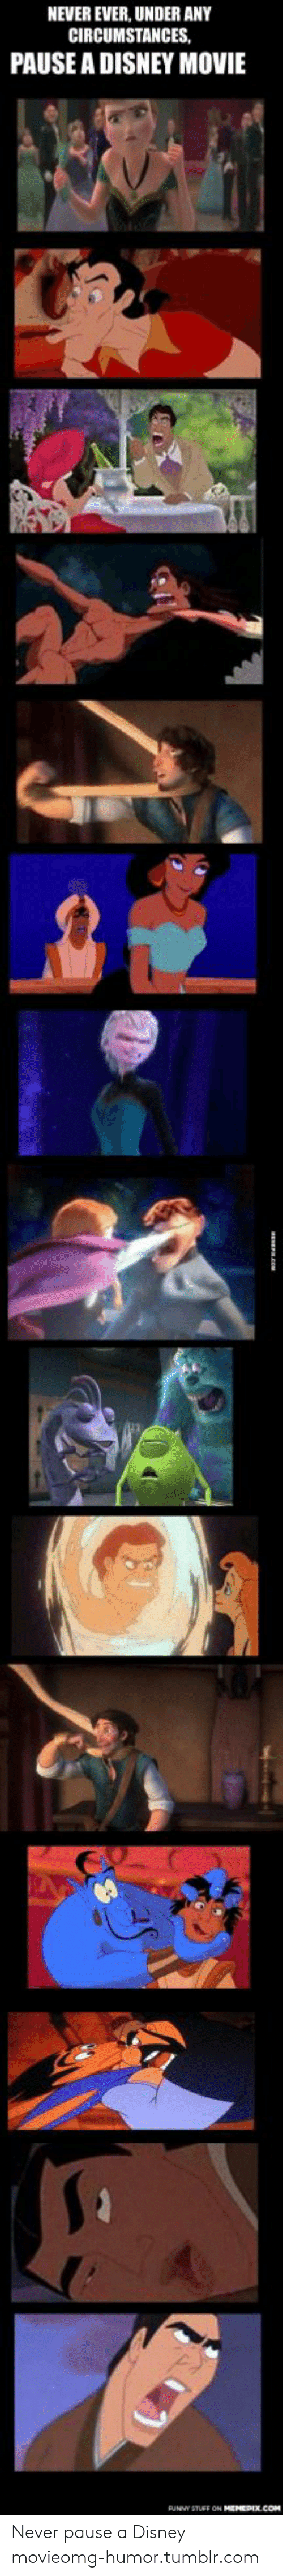 Disney, Omg, and Tumblr: NEVER EVER, UNDER ANY  CIRCUMSTANCES,  PAUSE A DISNEY MOVIE  PUNNY STUFF ON MEMEPIX.COM Never pause a Disney movieomg-humor.tumblr.com